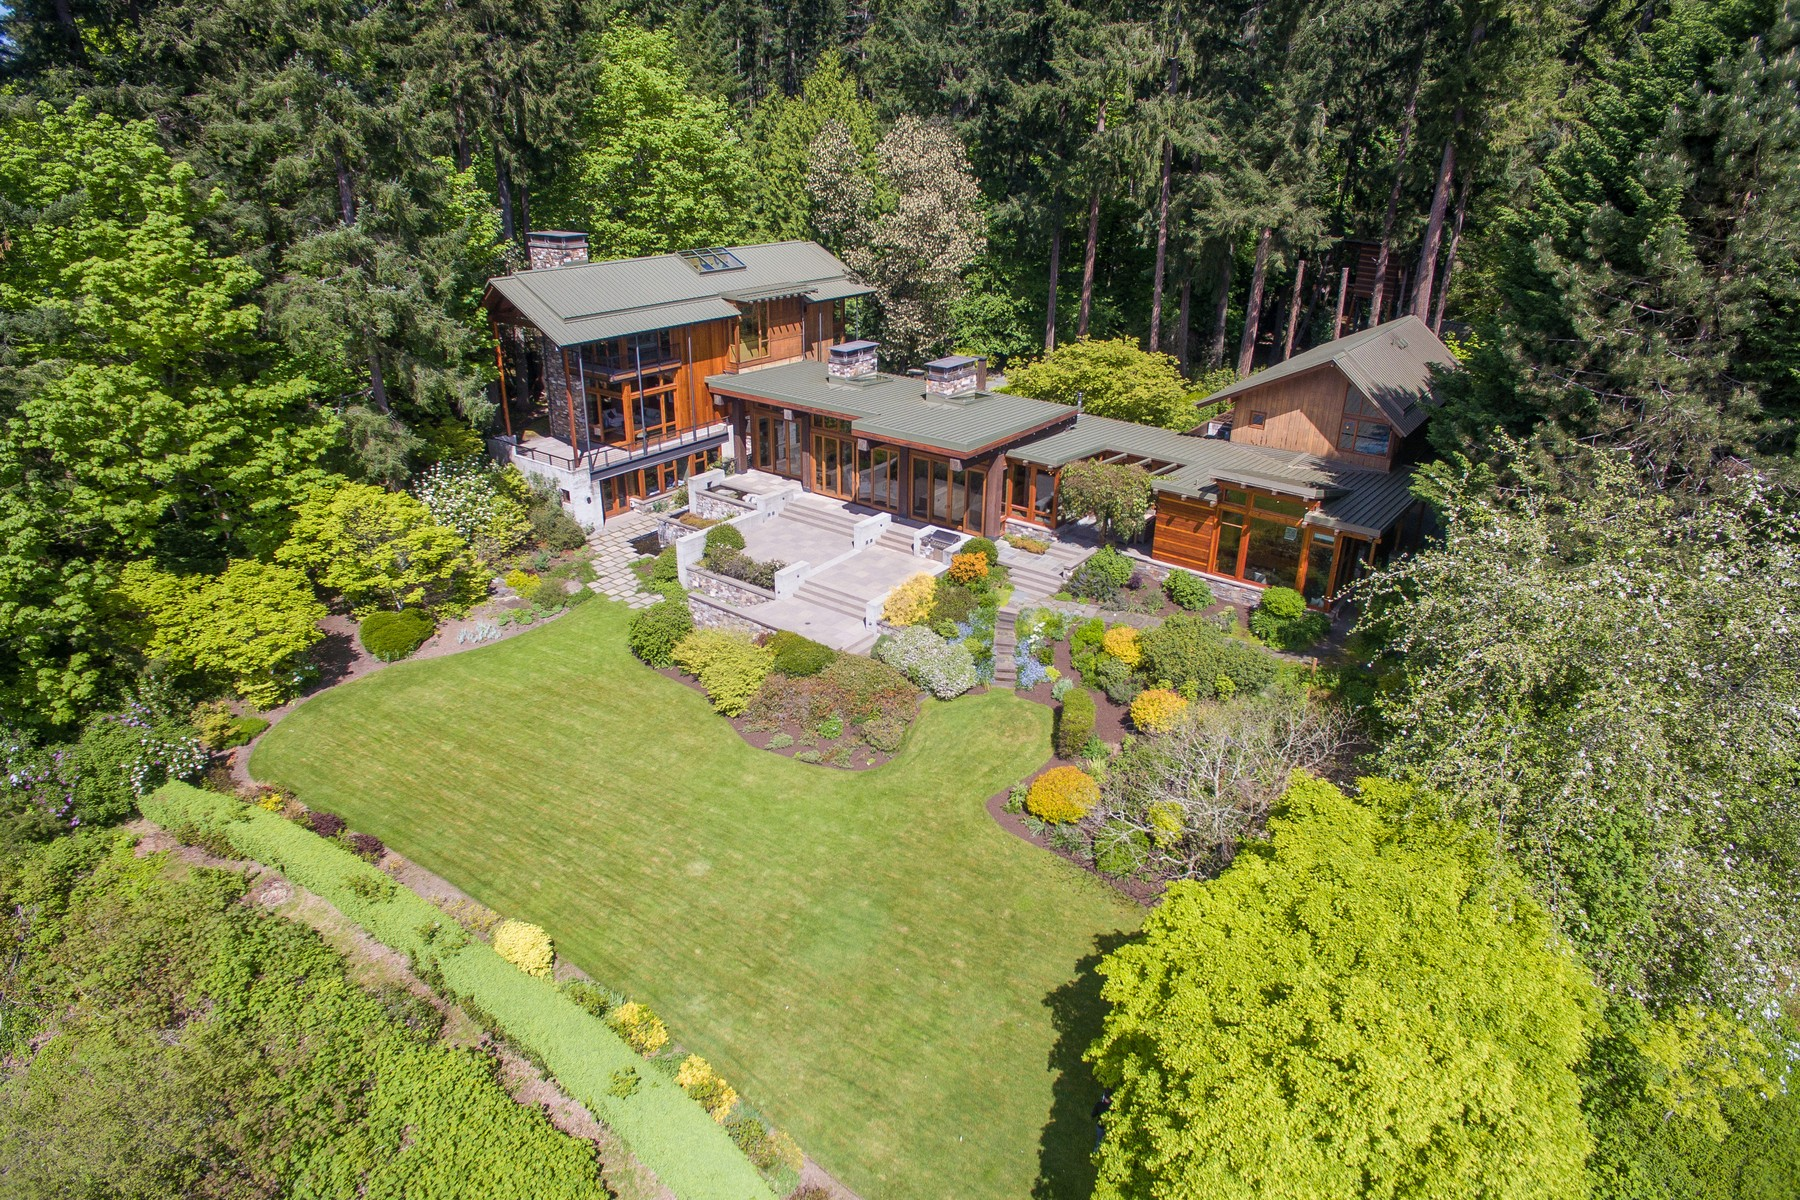 Maison unifamiliale pour l Vente à Picturesque waterfront estate RES5/3 Undisclosed Bainbridge Island, Washington 98110 États-Unis